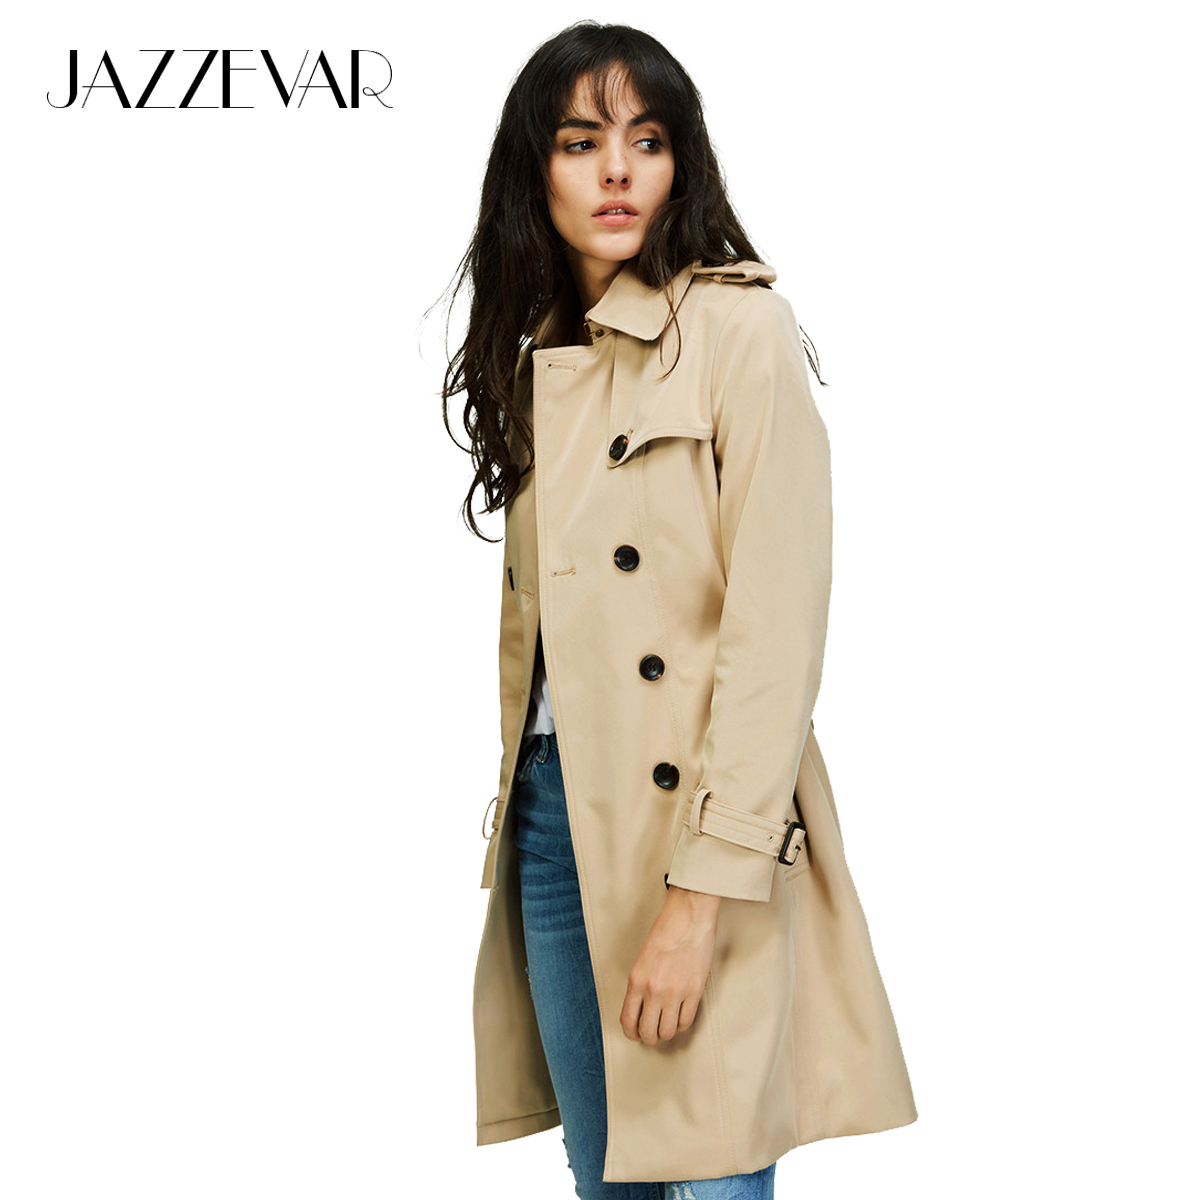 JAZZEVAR Double Breasted Trench Waterproof Raincoat